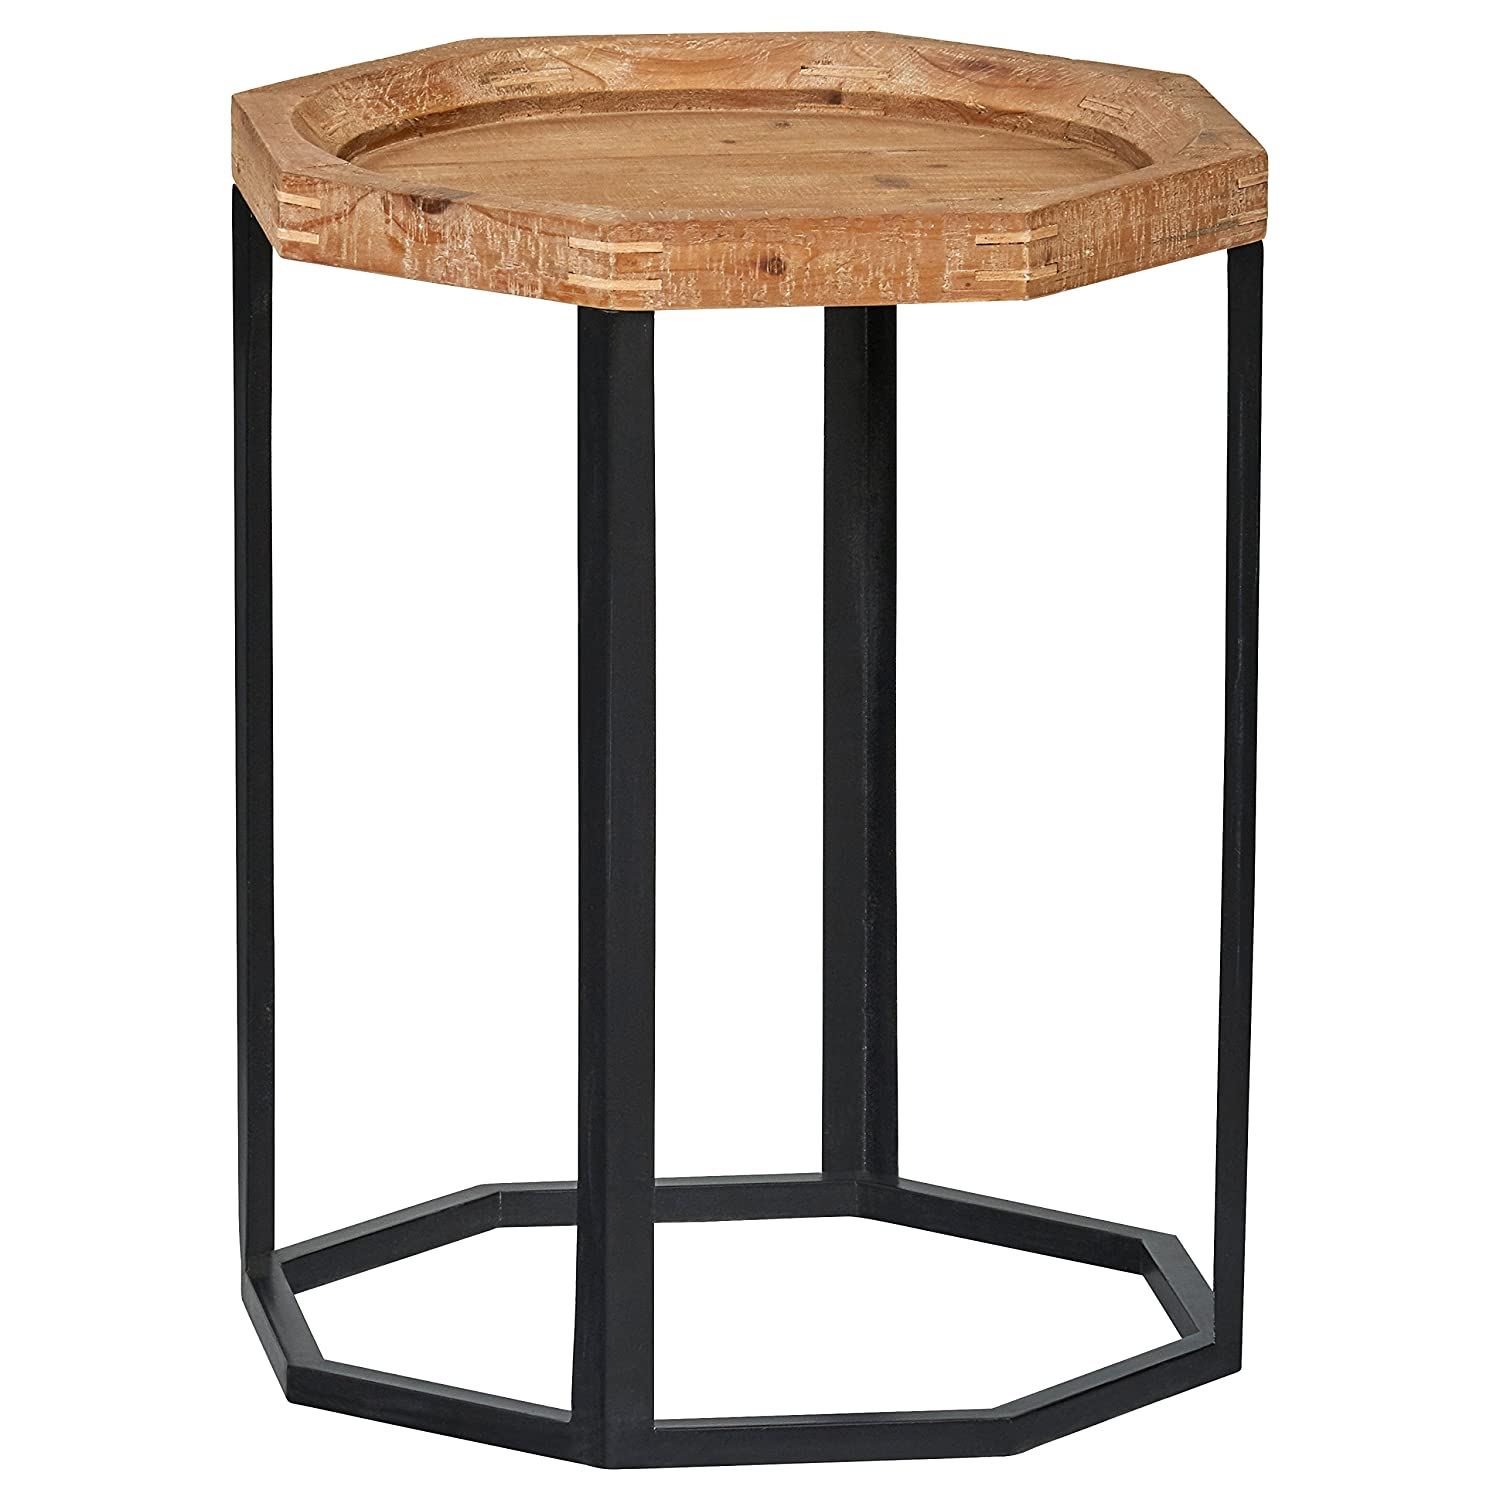 "Stone & Beam Arie Rustic Octagonal End Table, 17.3""W, Natural"